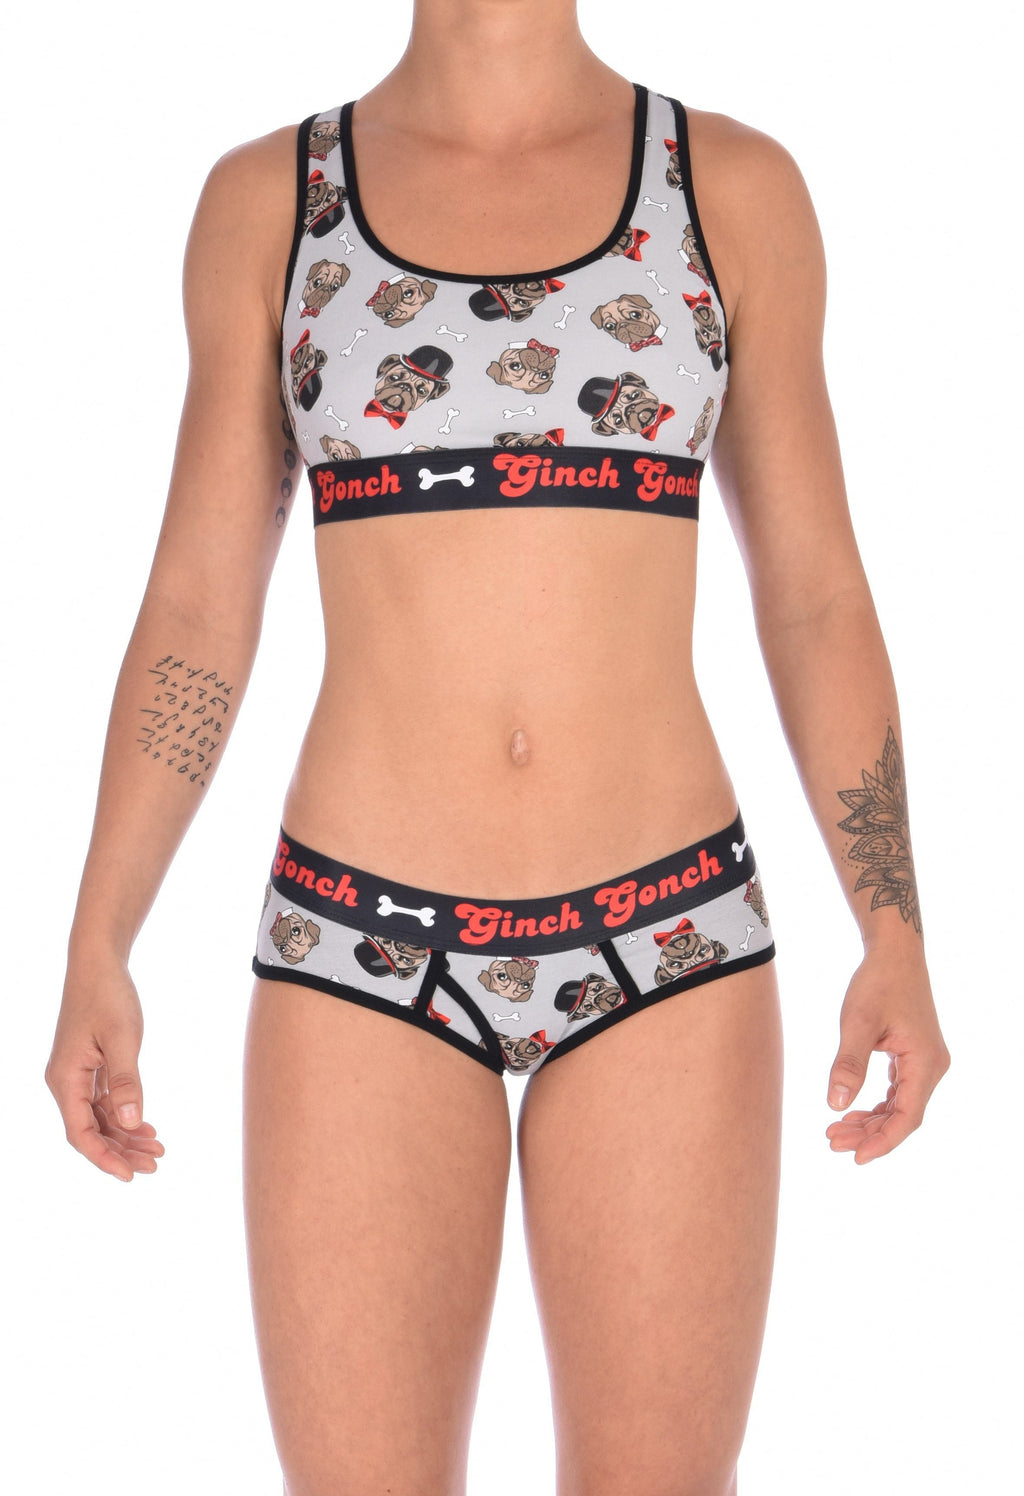 GG Ginch Gonch Pug Life boy cut brief y front - women's Underwear grey background with pugs with top hats and bow ties and bones. Black trim with black printed waistband front. Shown with matching sports bra